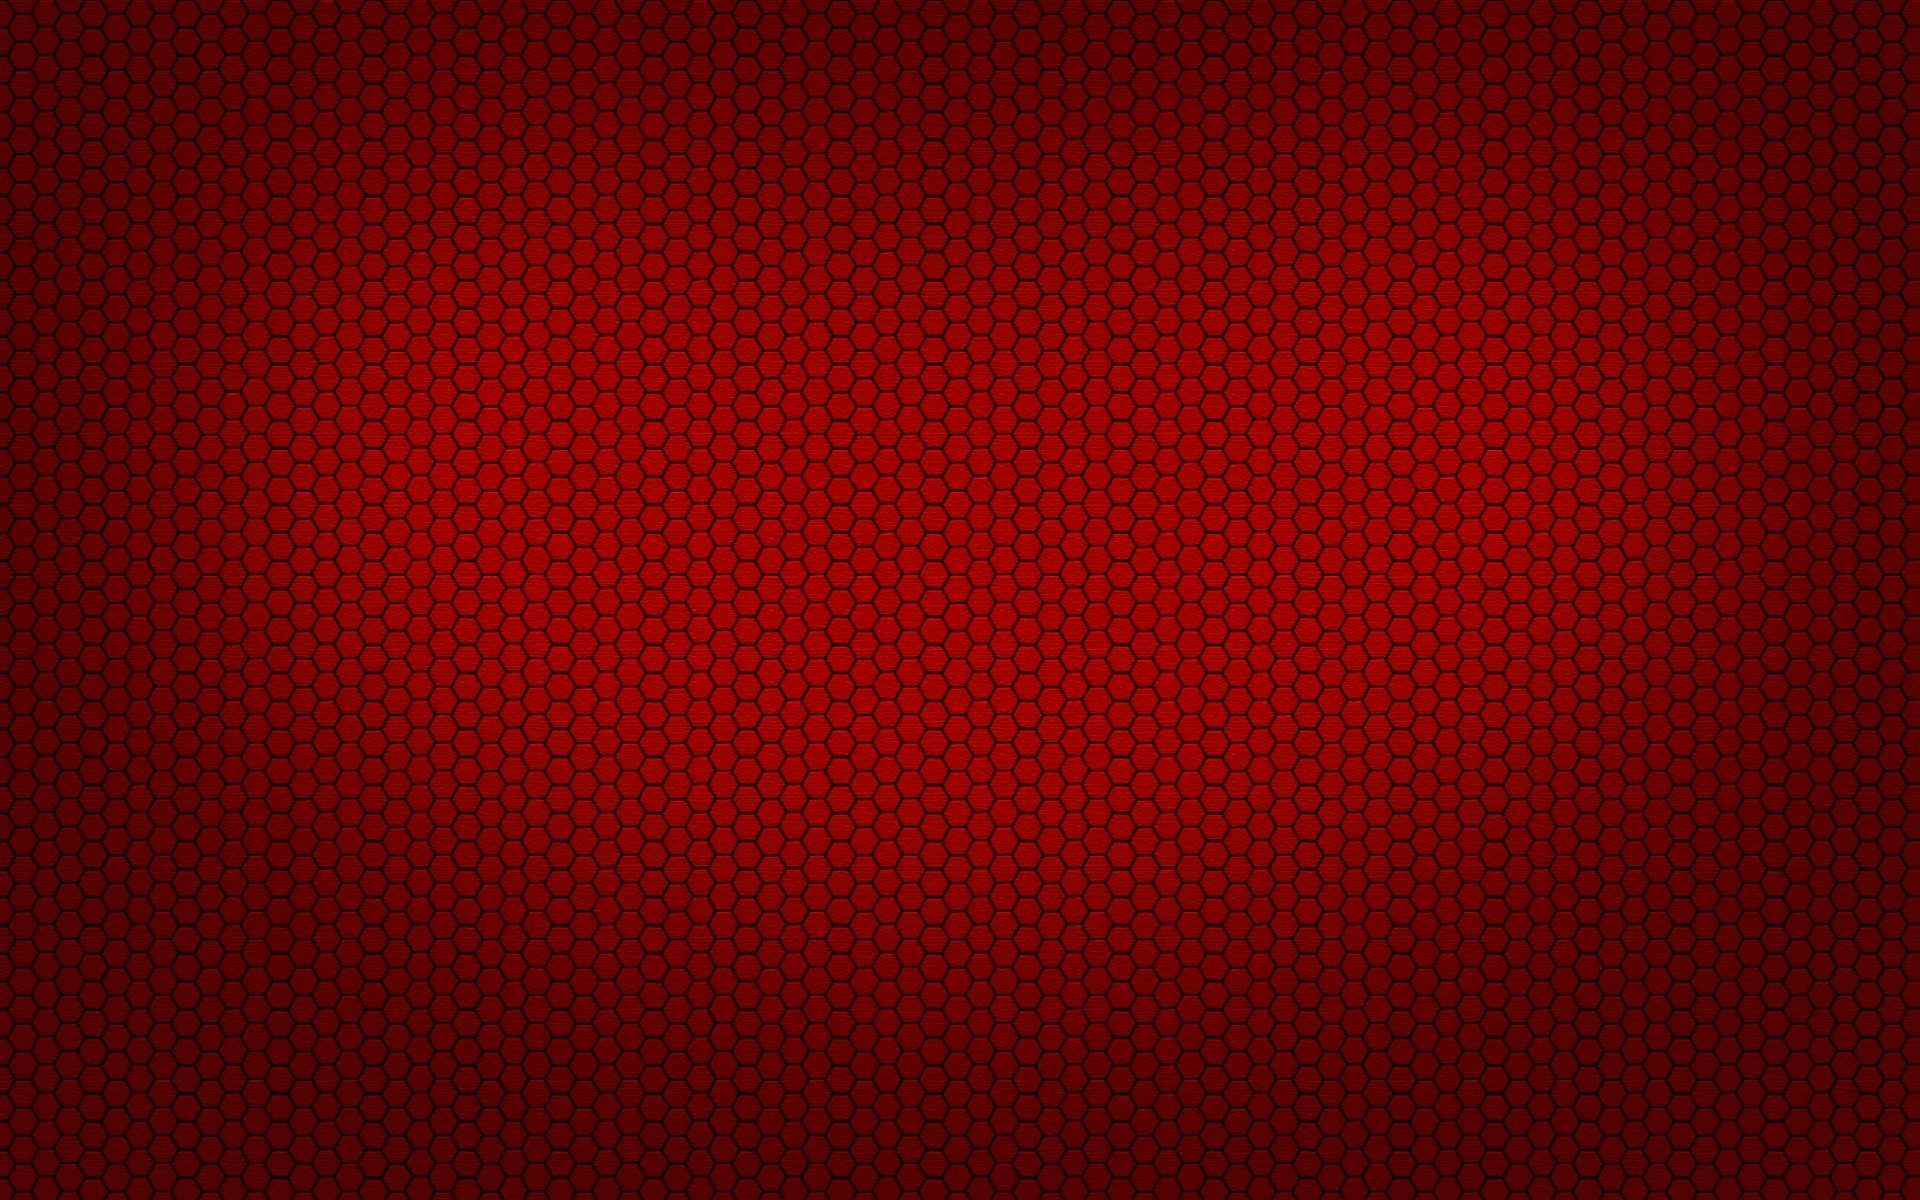 1920x1200 Cool Plain Backgrounds - Wallpaper Cave Plain Backgrounds Wallpapers on  KuBiPeT.com ...